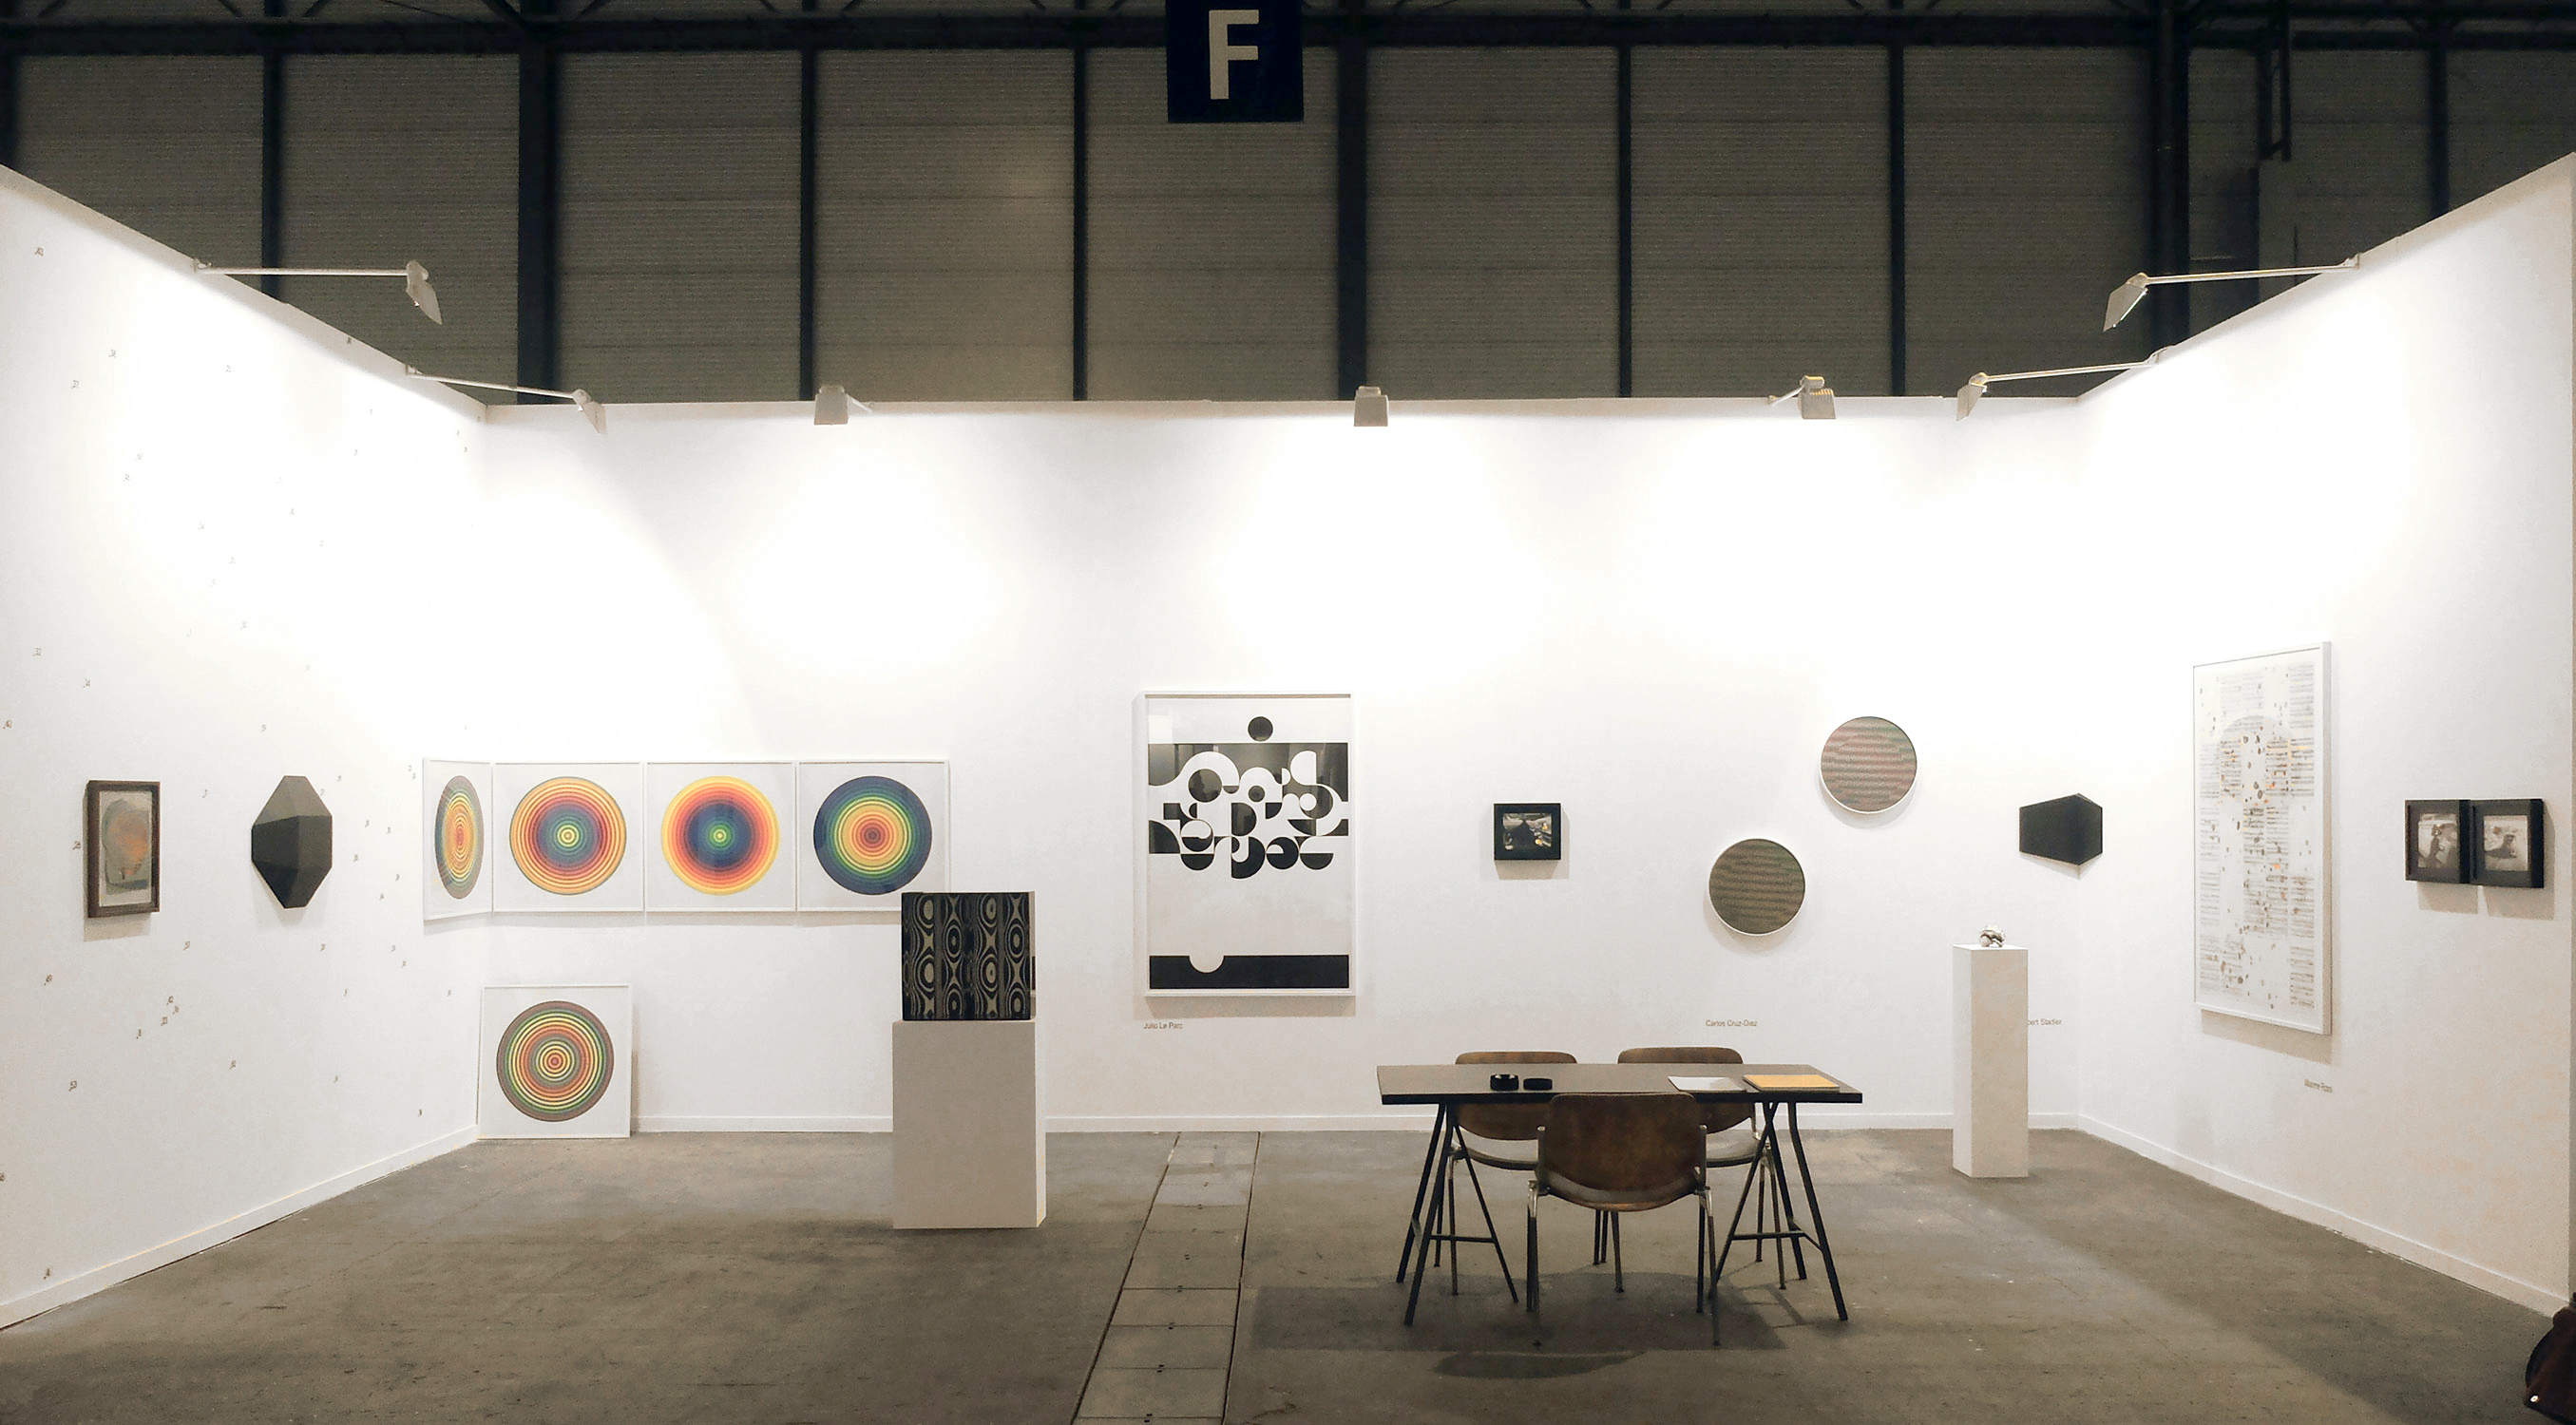 ARCO Booth 7F02